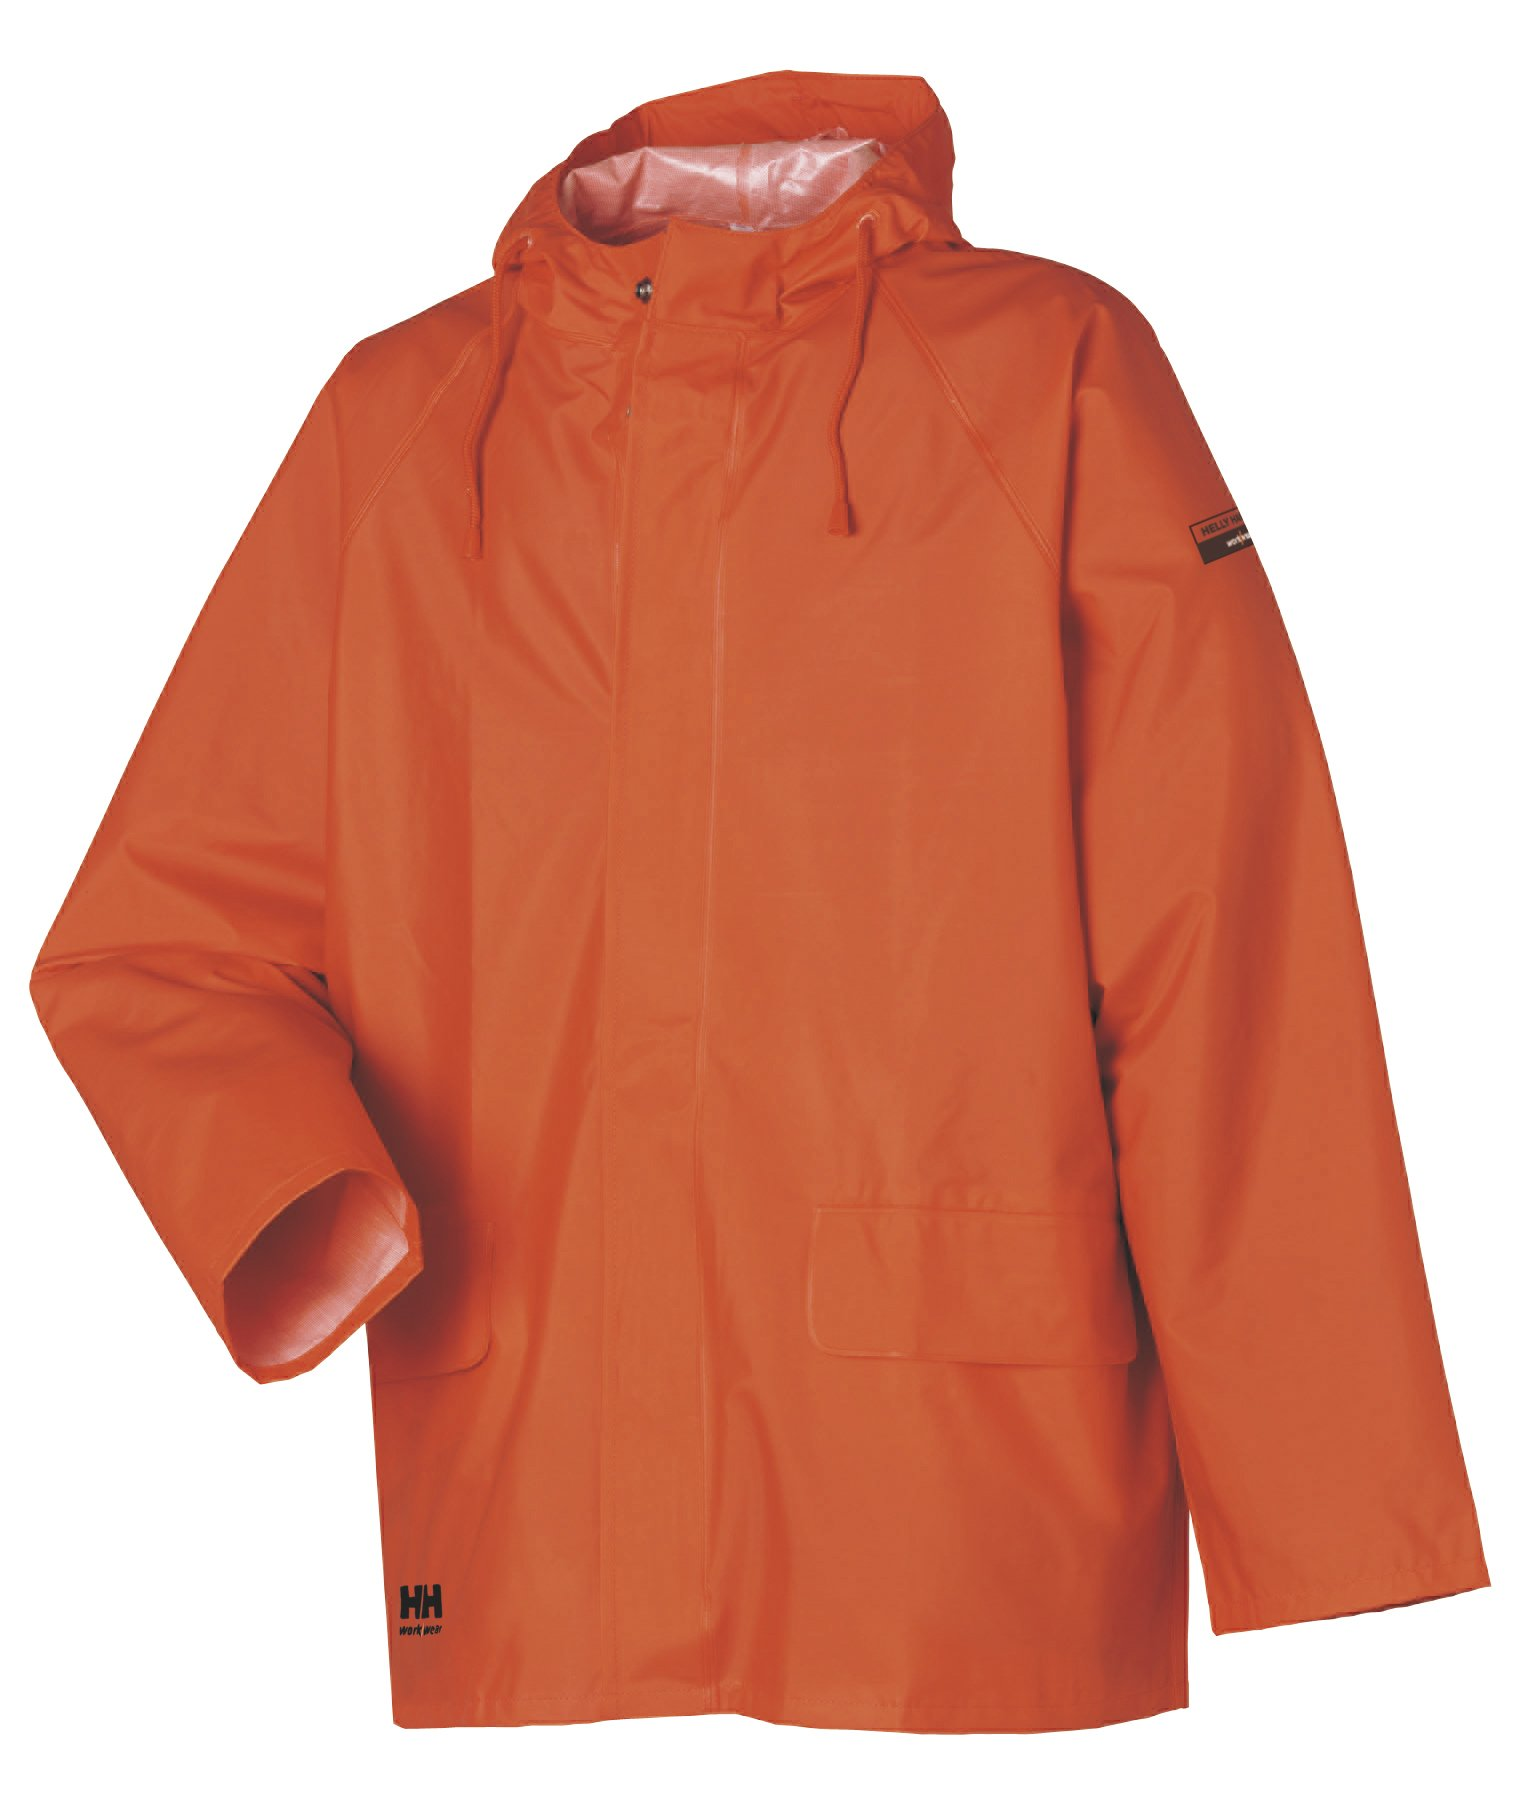 Helly Hansen Workwear Men's Mandal Rain Jacket, Dark Orange, X-Large by Helly Hansen